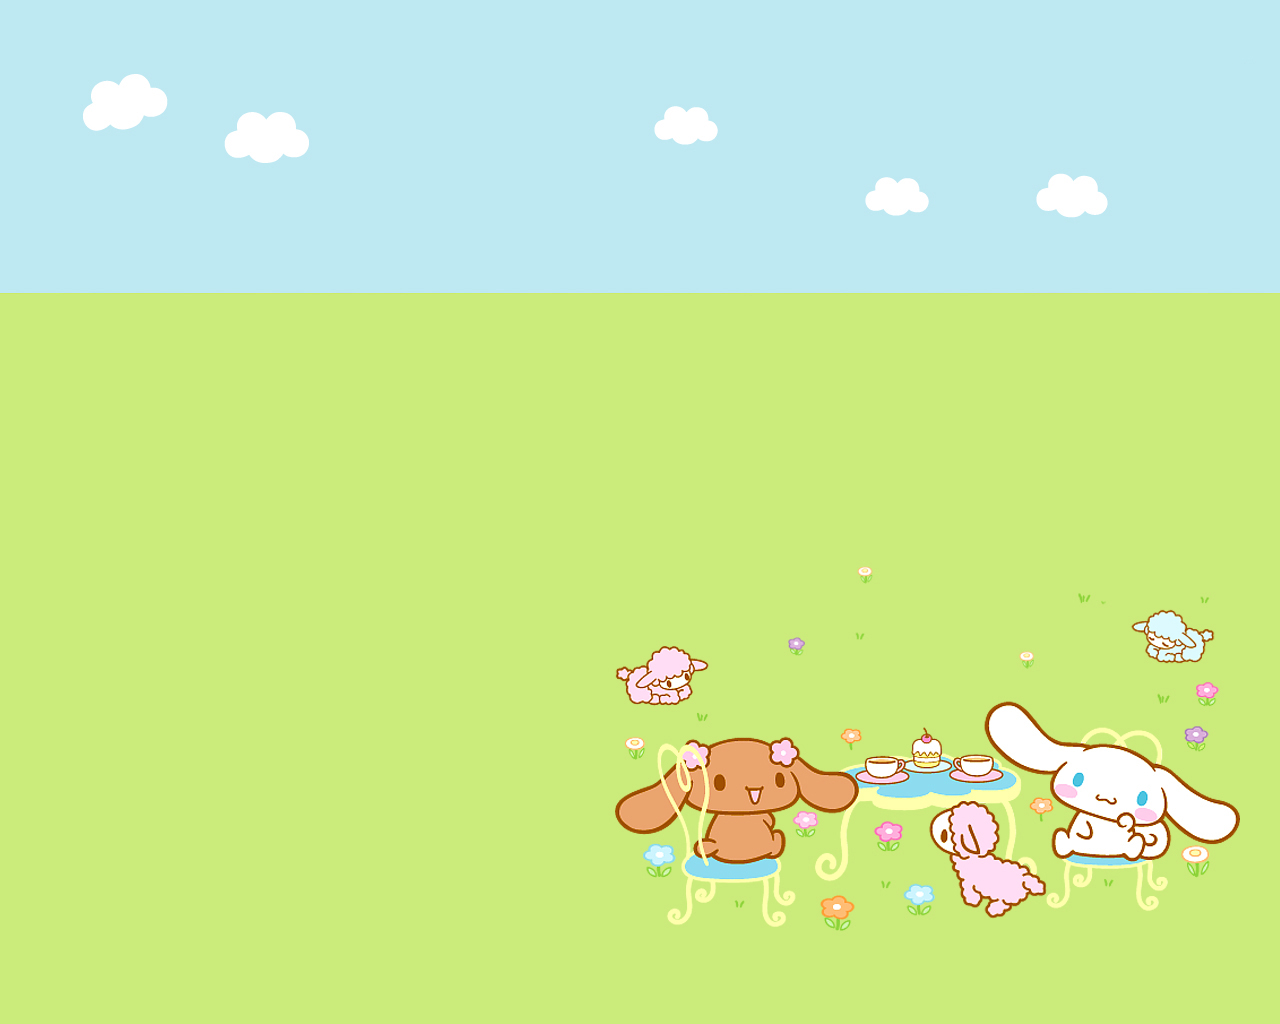 Cute Anime Characters Wallpapers Picnic Cinnamoroll Cute Kawaii Resources